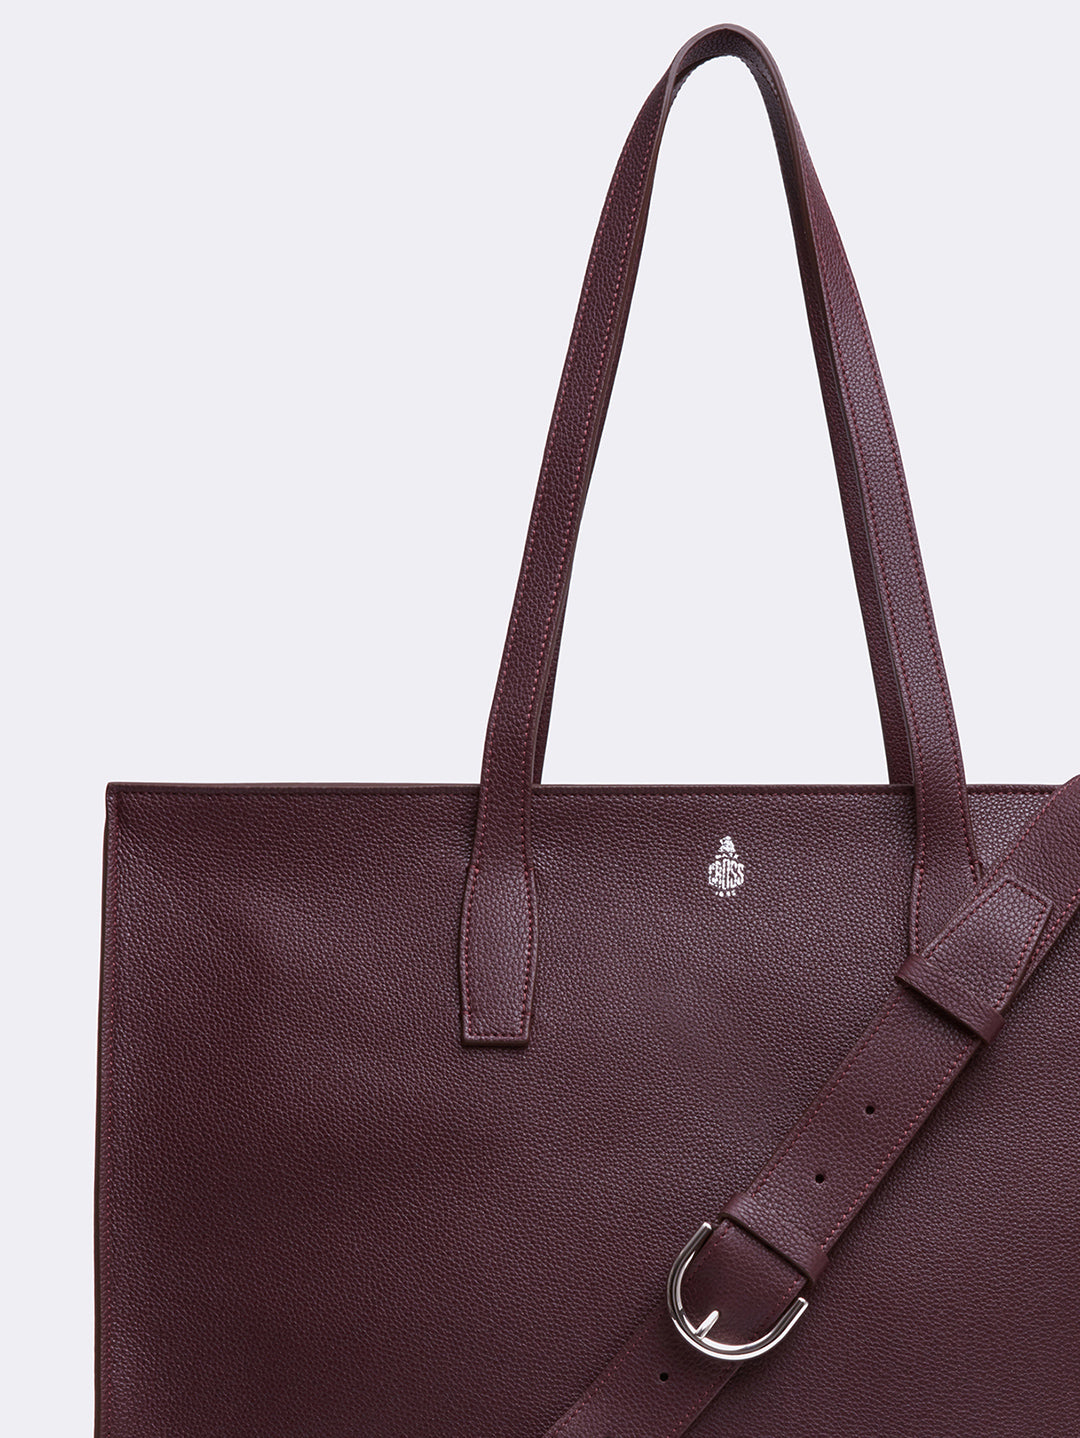 Mark Cross Fitzgerald East West Leather Tote Tumbled Grain Bordeaux Detail